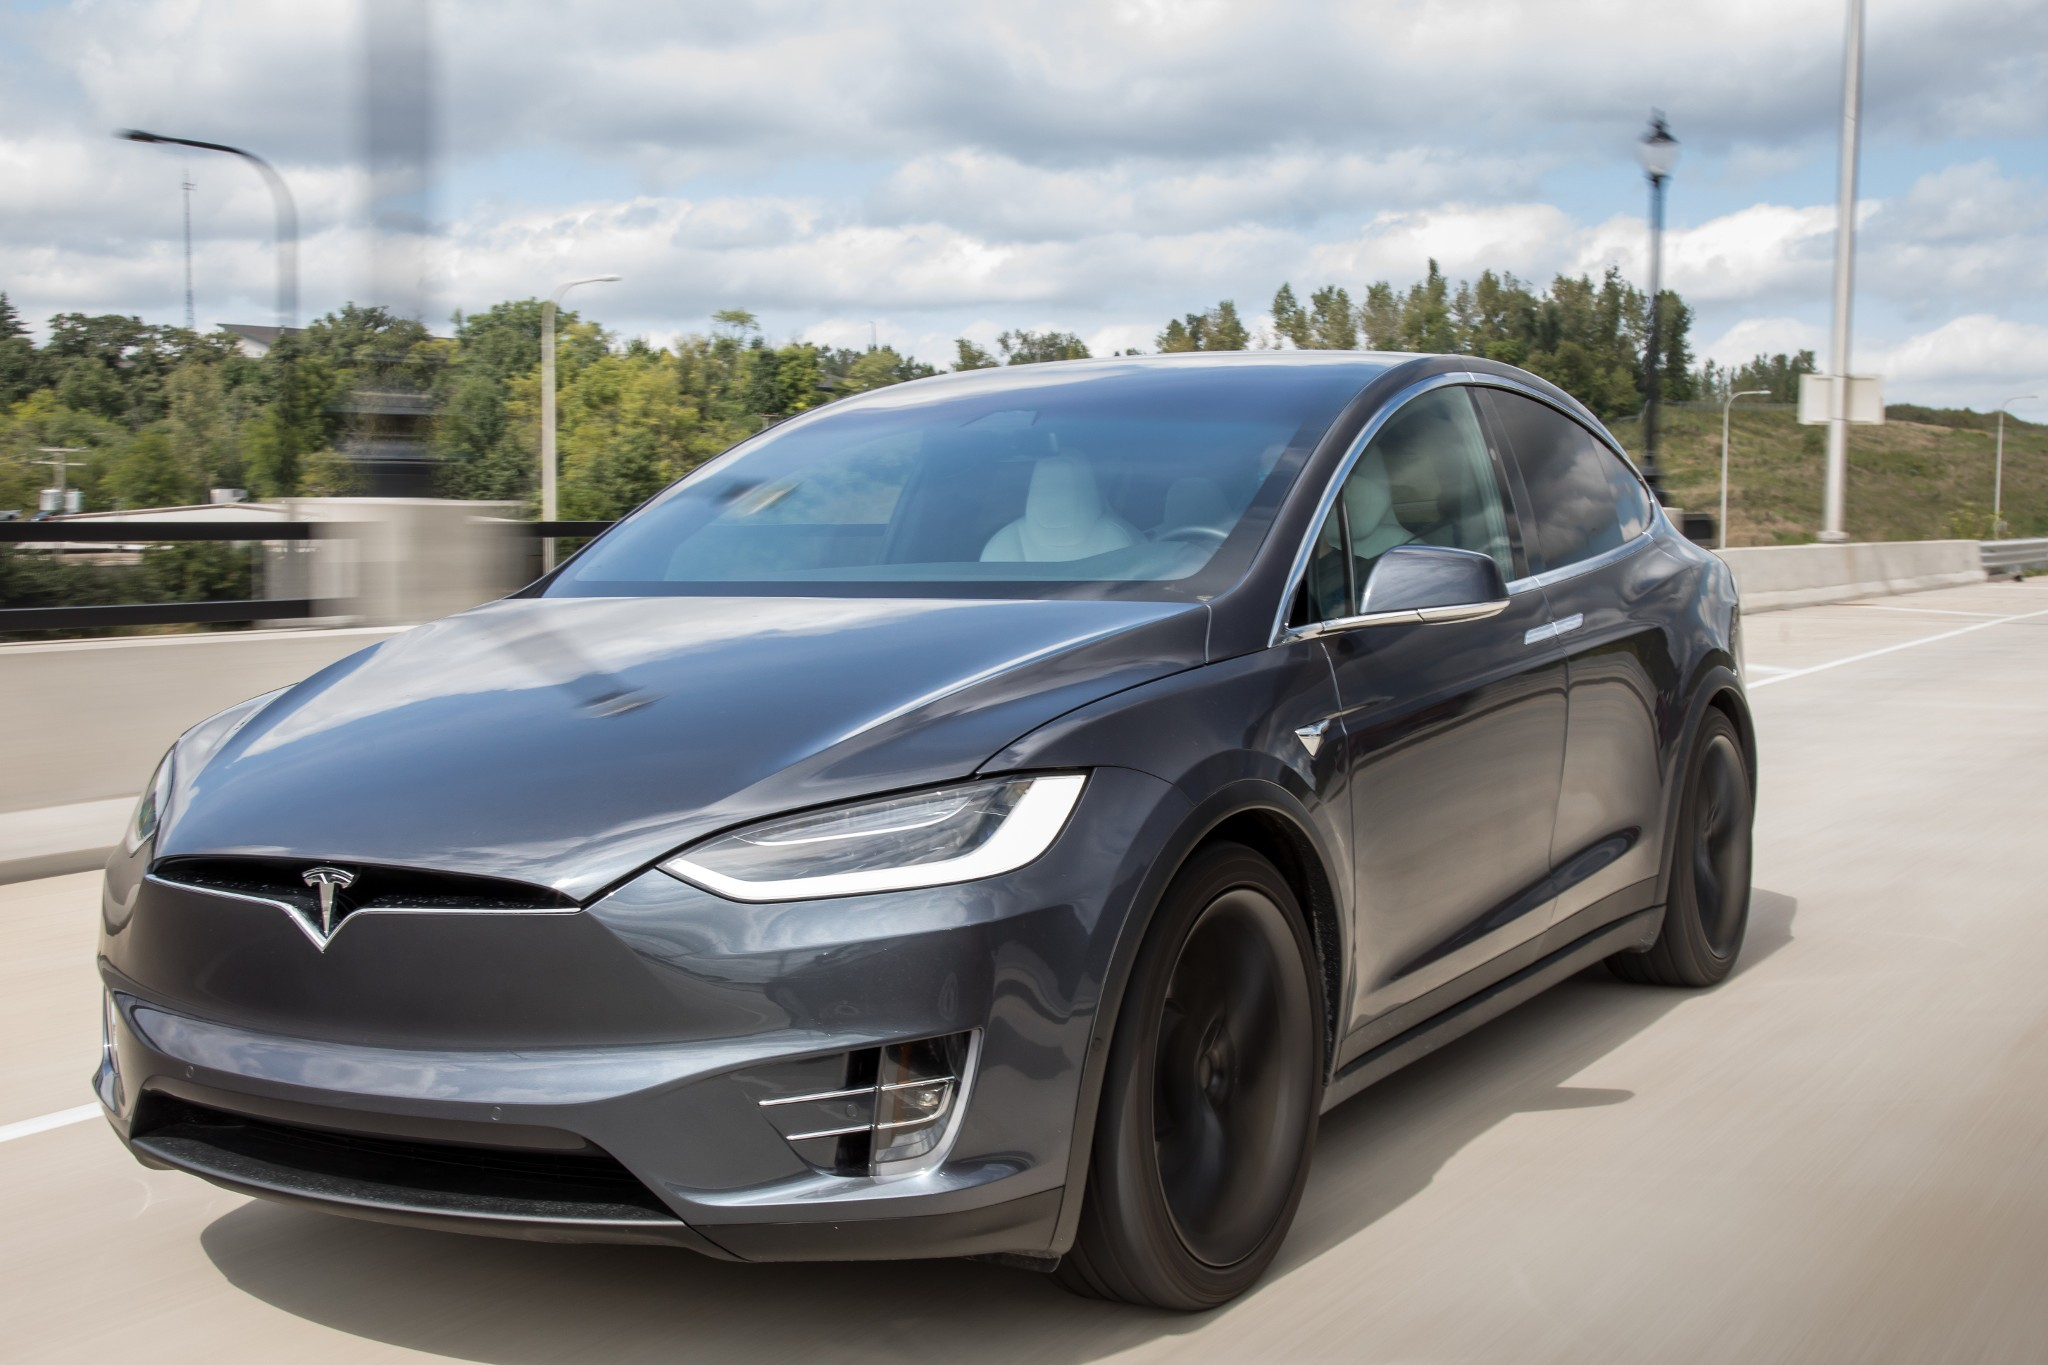 The Week in Tesla News: More Mileage for Model S and X, Power Steering Recall, Tesla Takes Subway and More